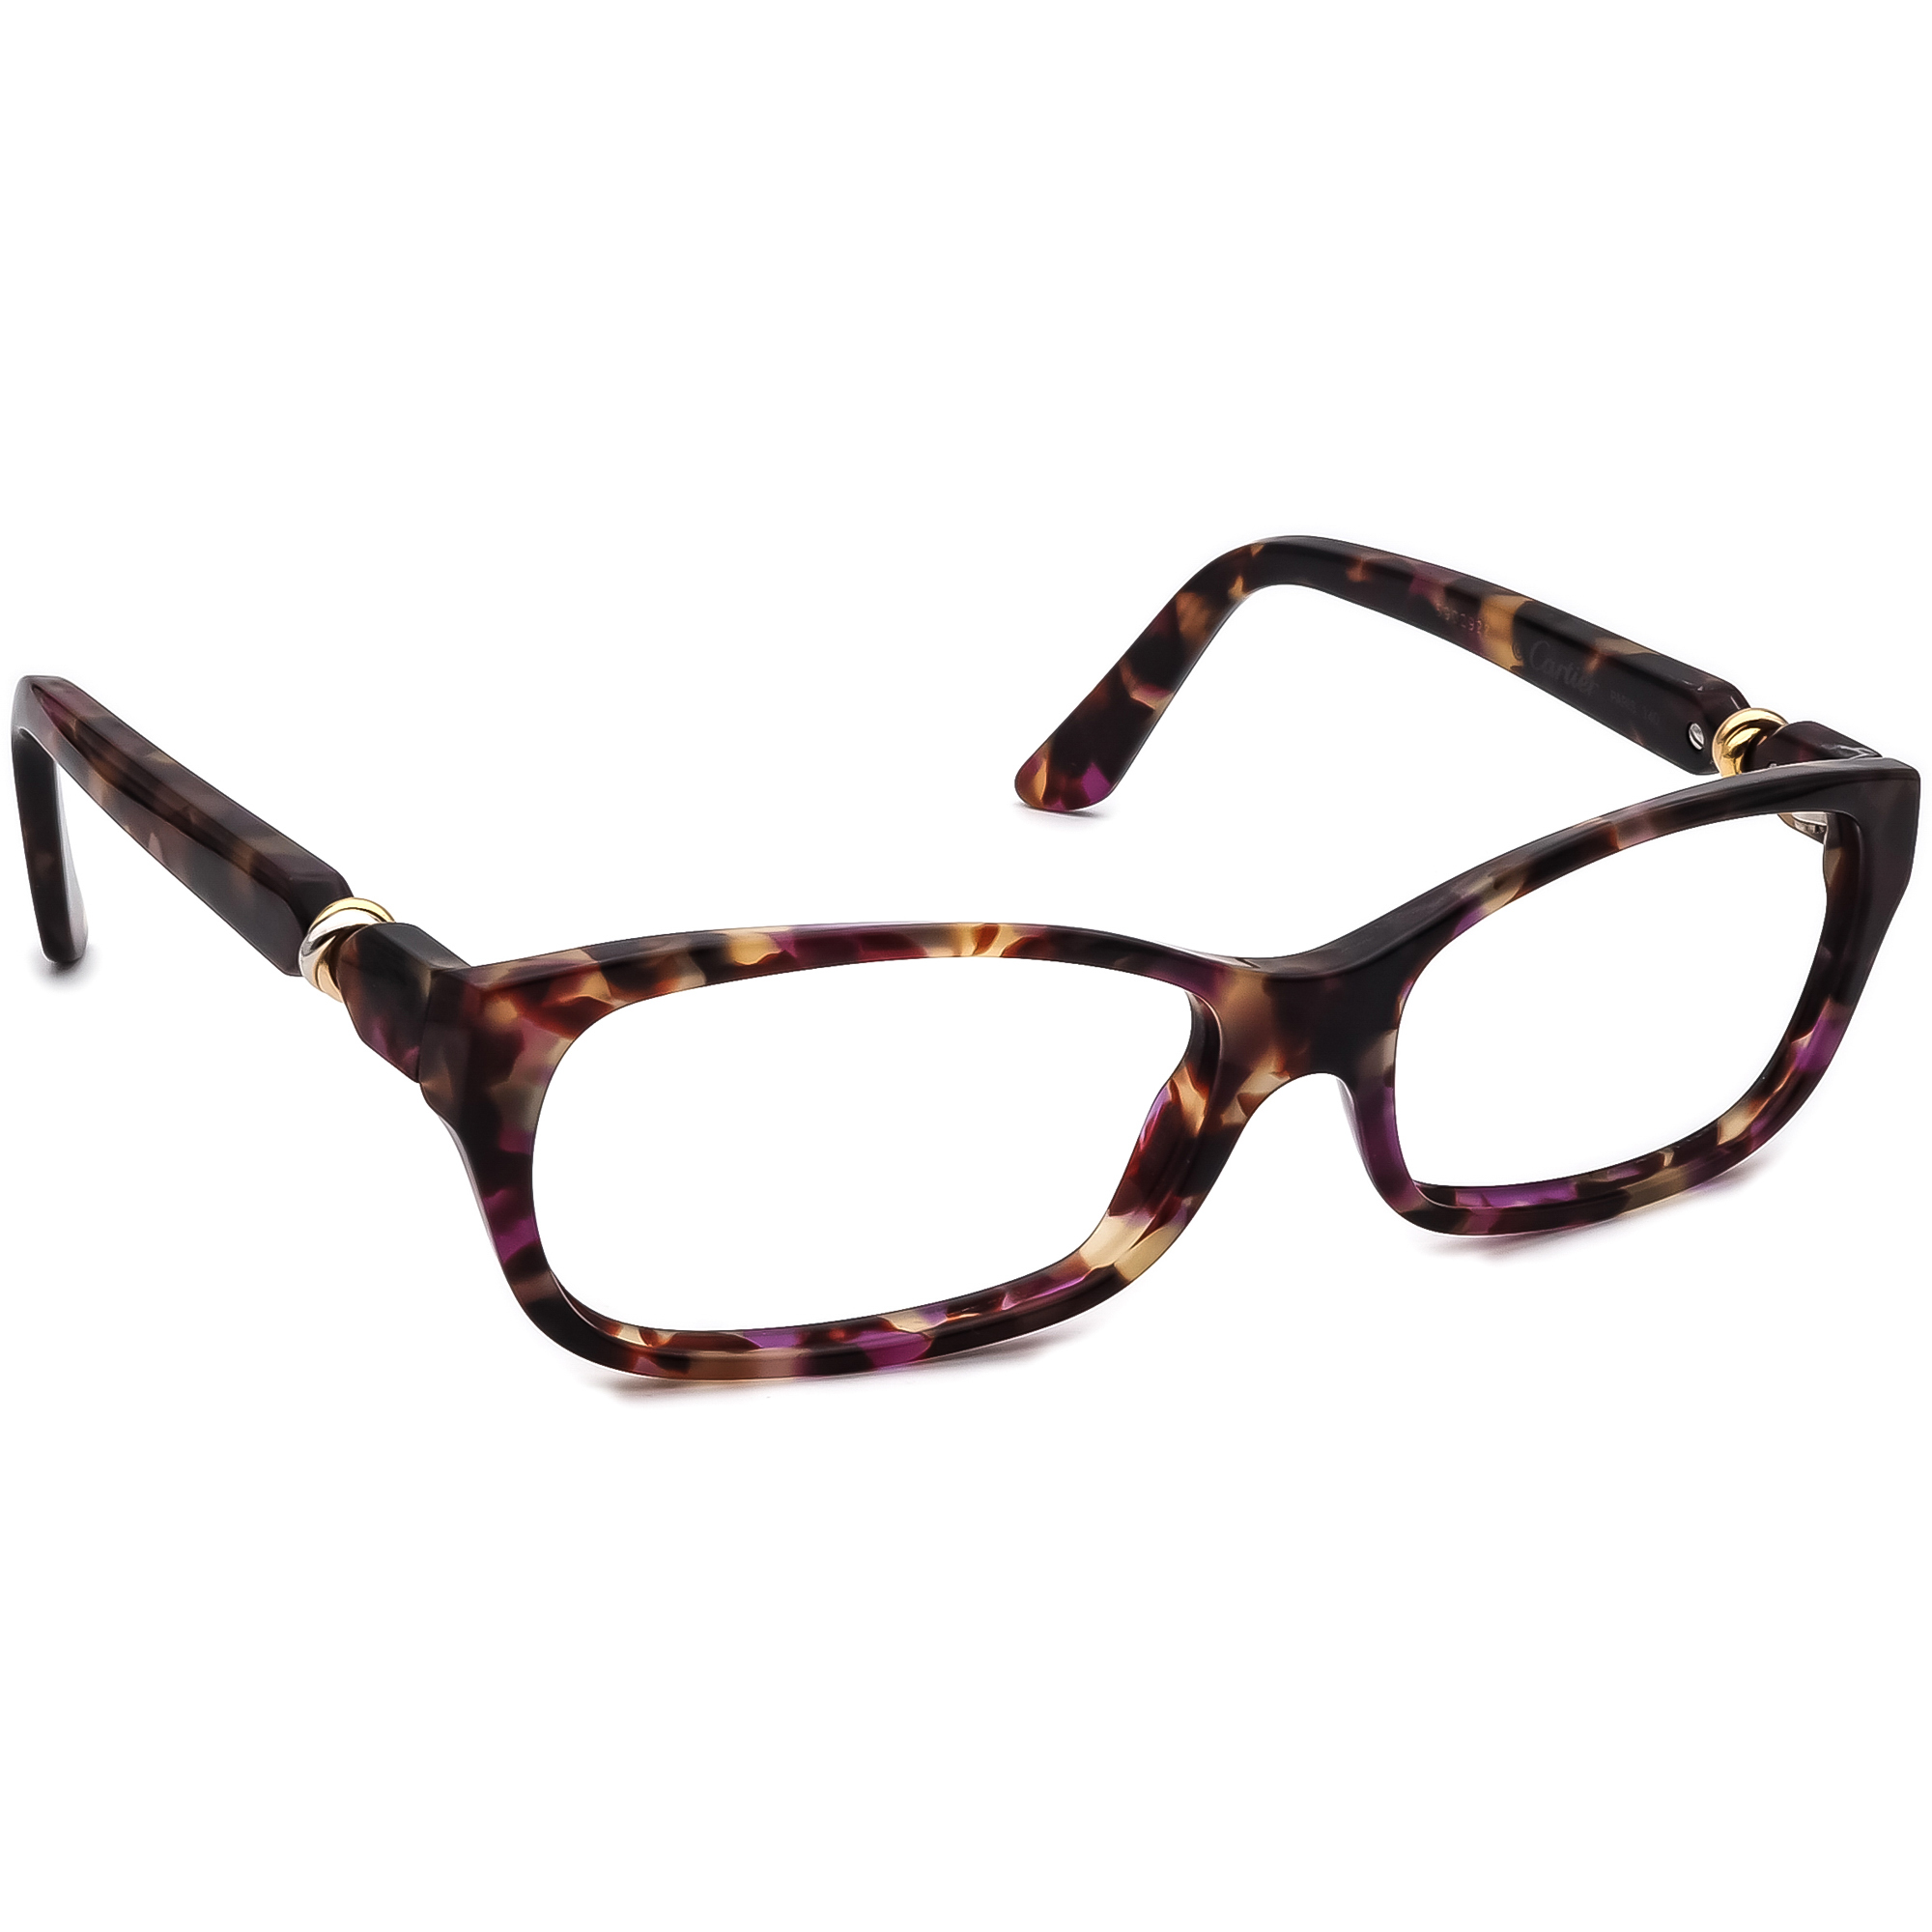 Cartier 5902928 Eyeglasses